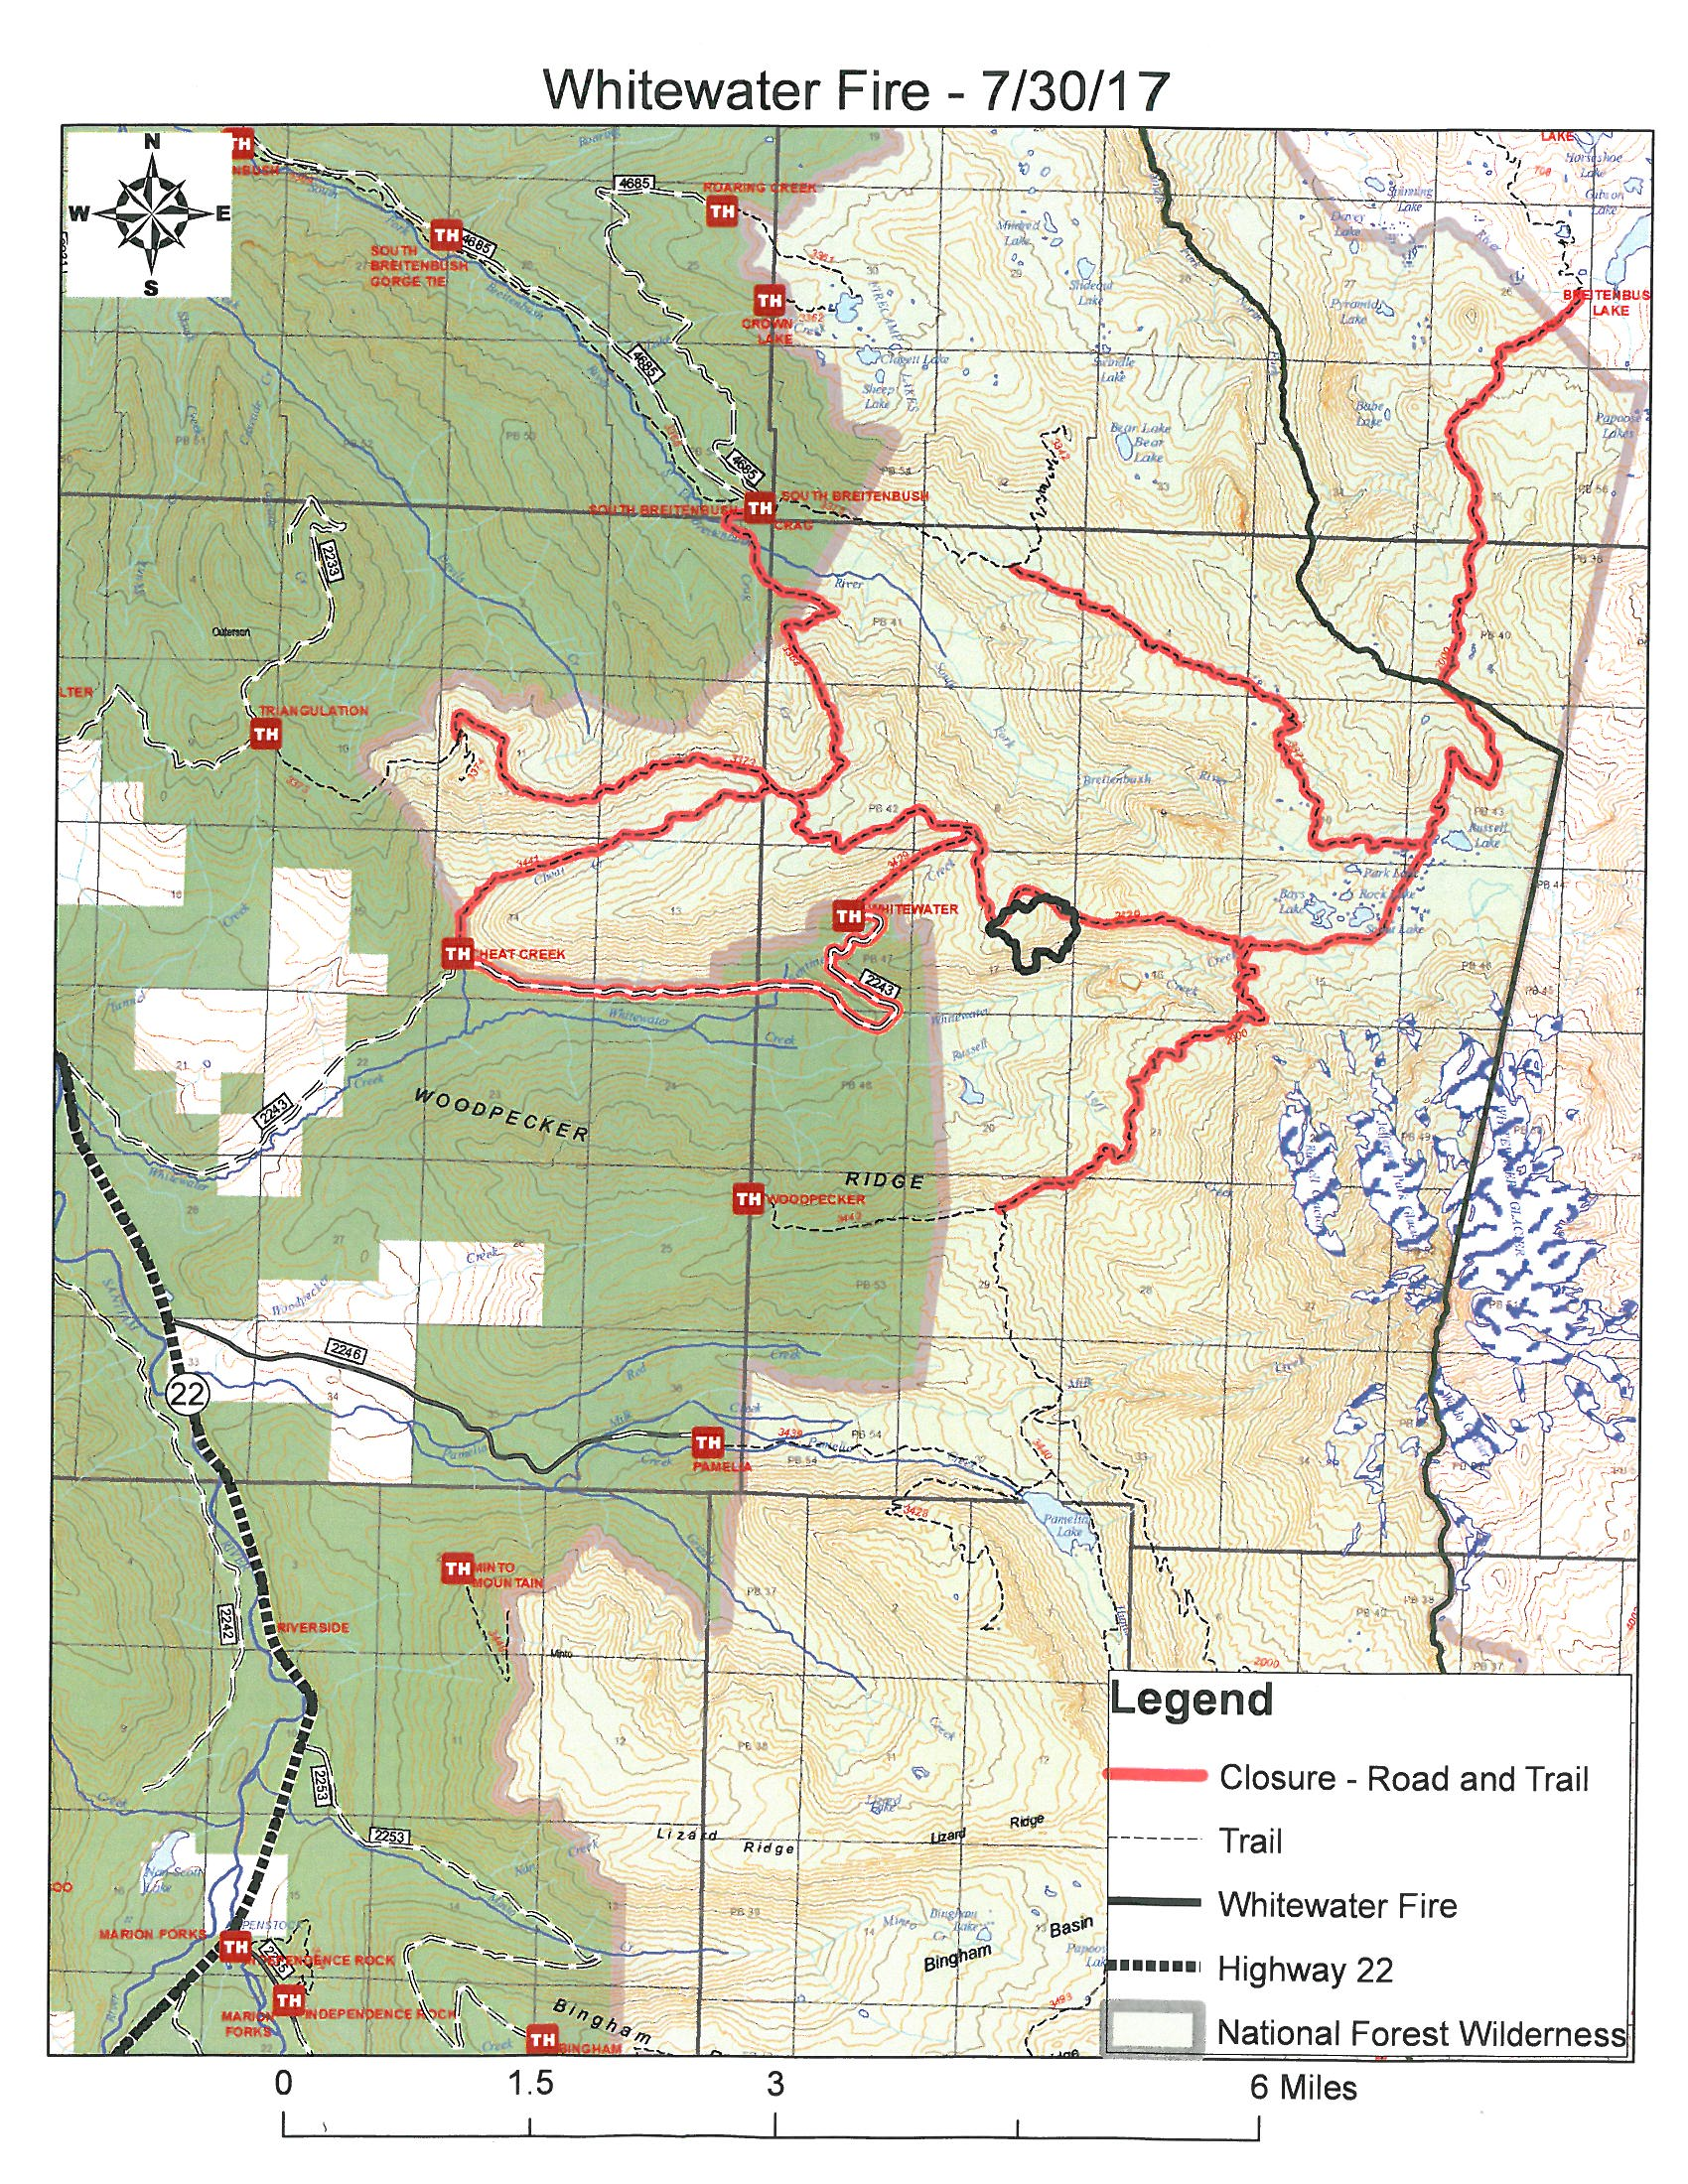 Forest Service A Map Showing Whitewater Fire Road And Trail